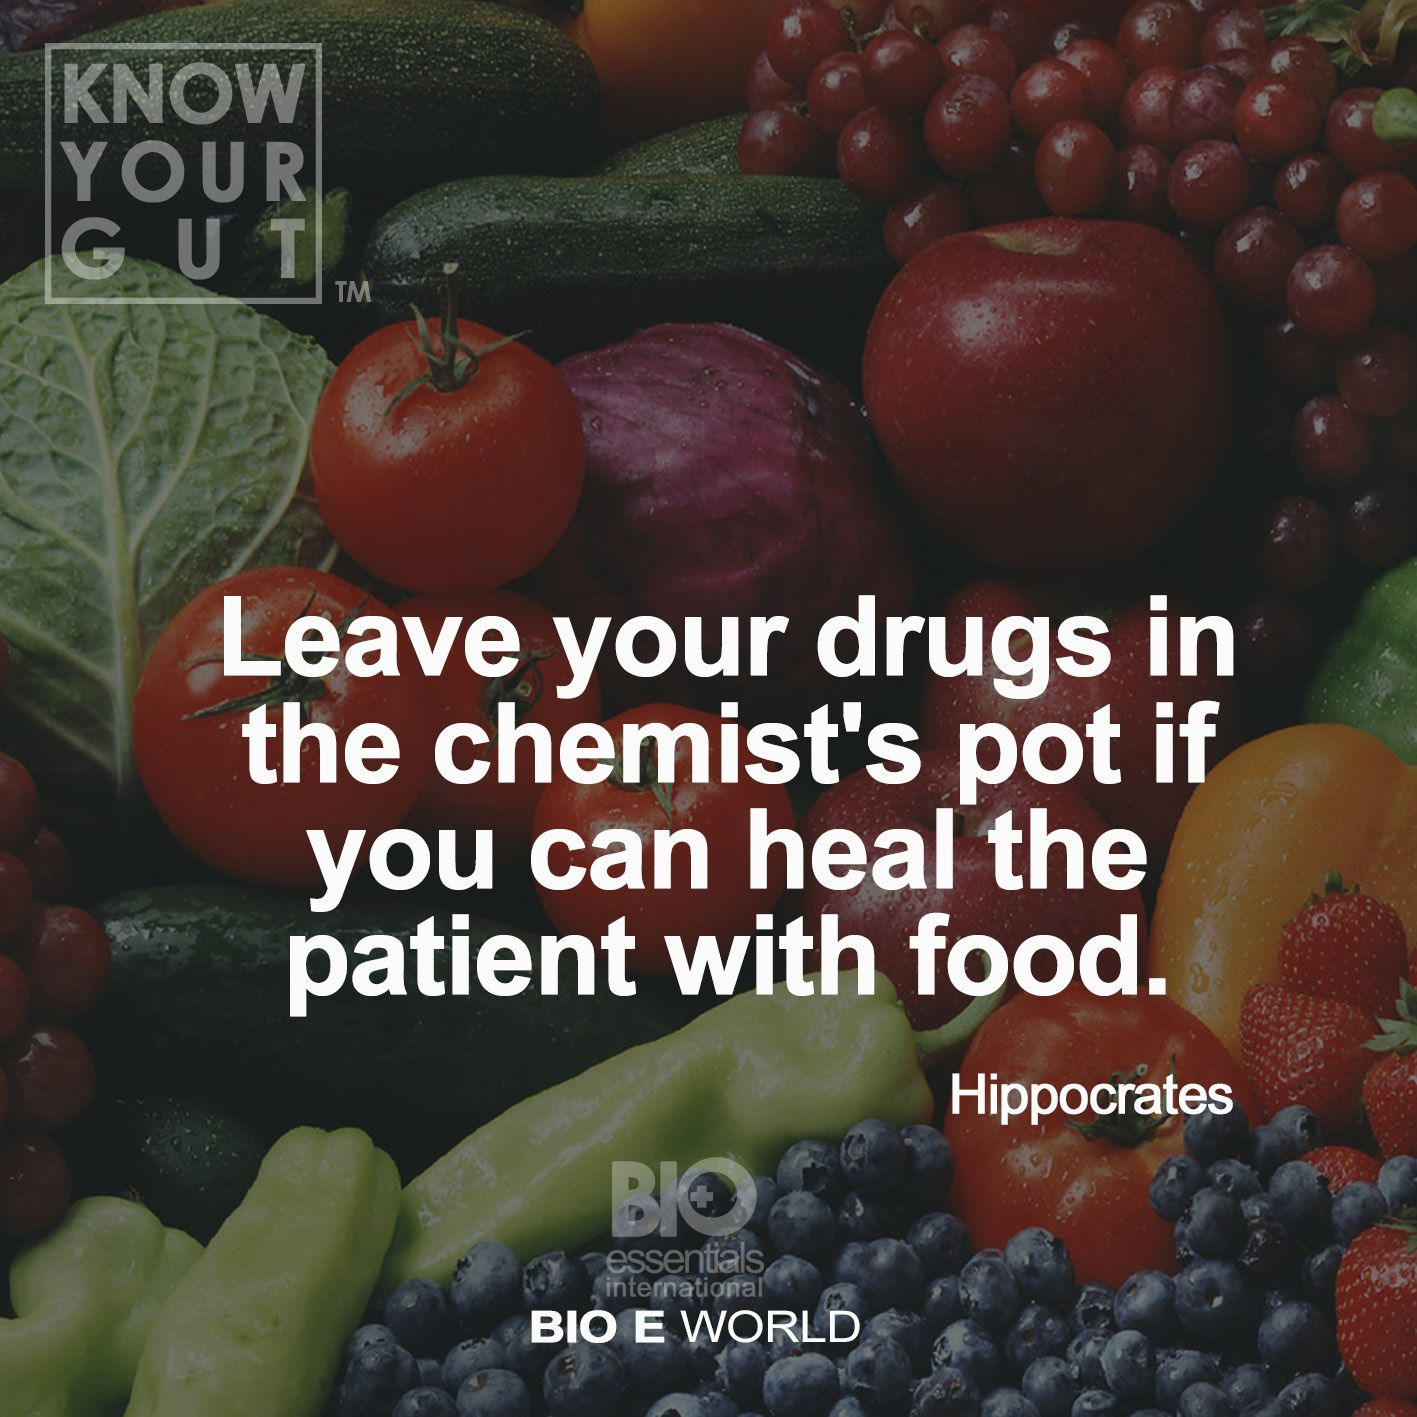 """""""Leave your drugs in the chemist's pot if you can heal the patient with food"""" - Hippocrates"""